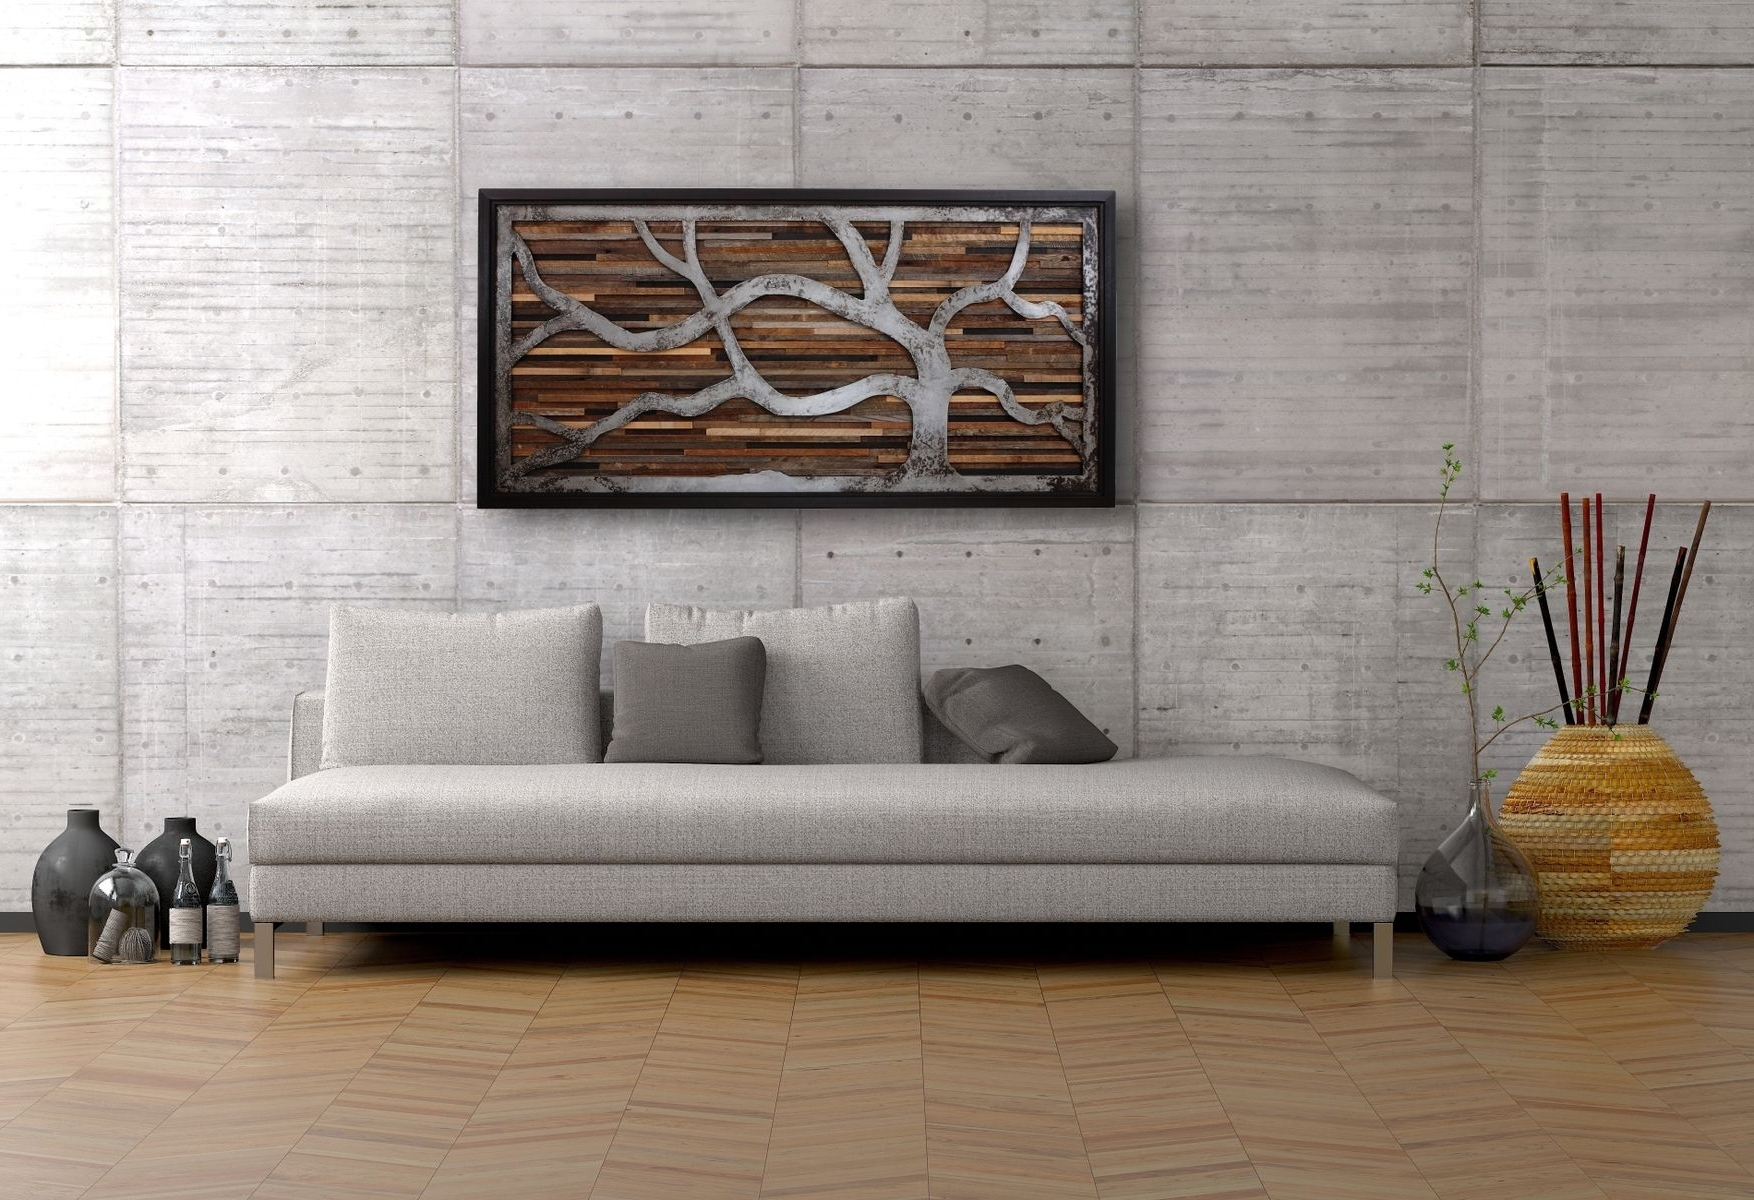 Handmade Reclaimed Wood Wall Art Made Of Old Barnwood And Rustic With Regard To Most Popular Wood Art Wall (View 8 of 15)